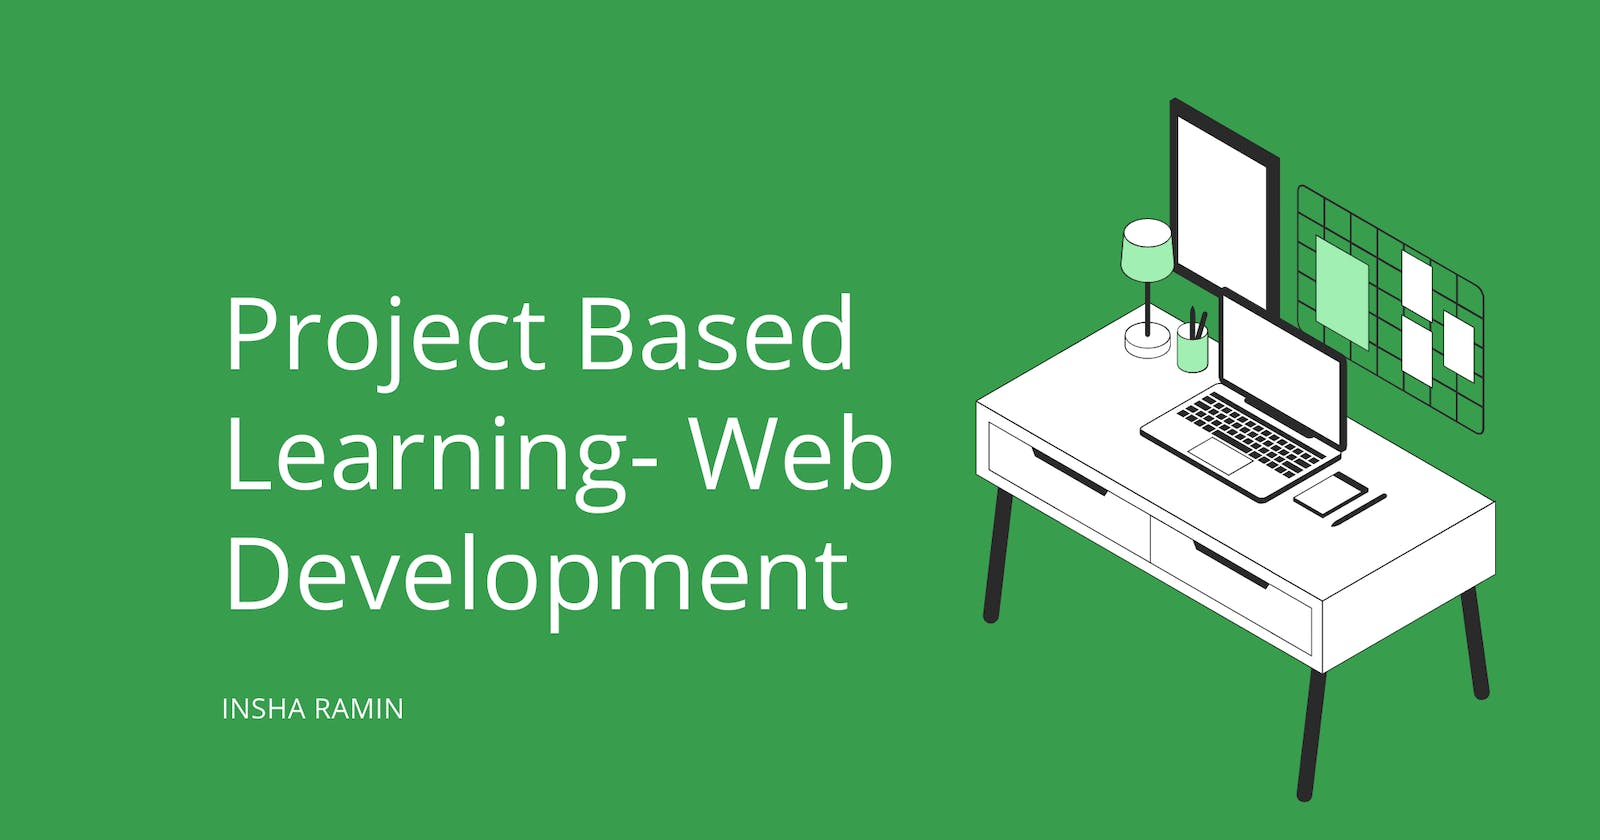 Project-Based Learning Approach